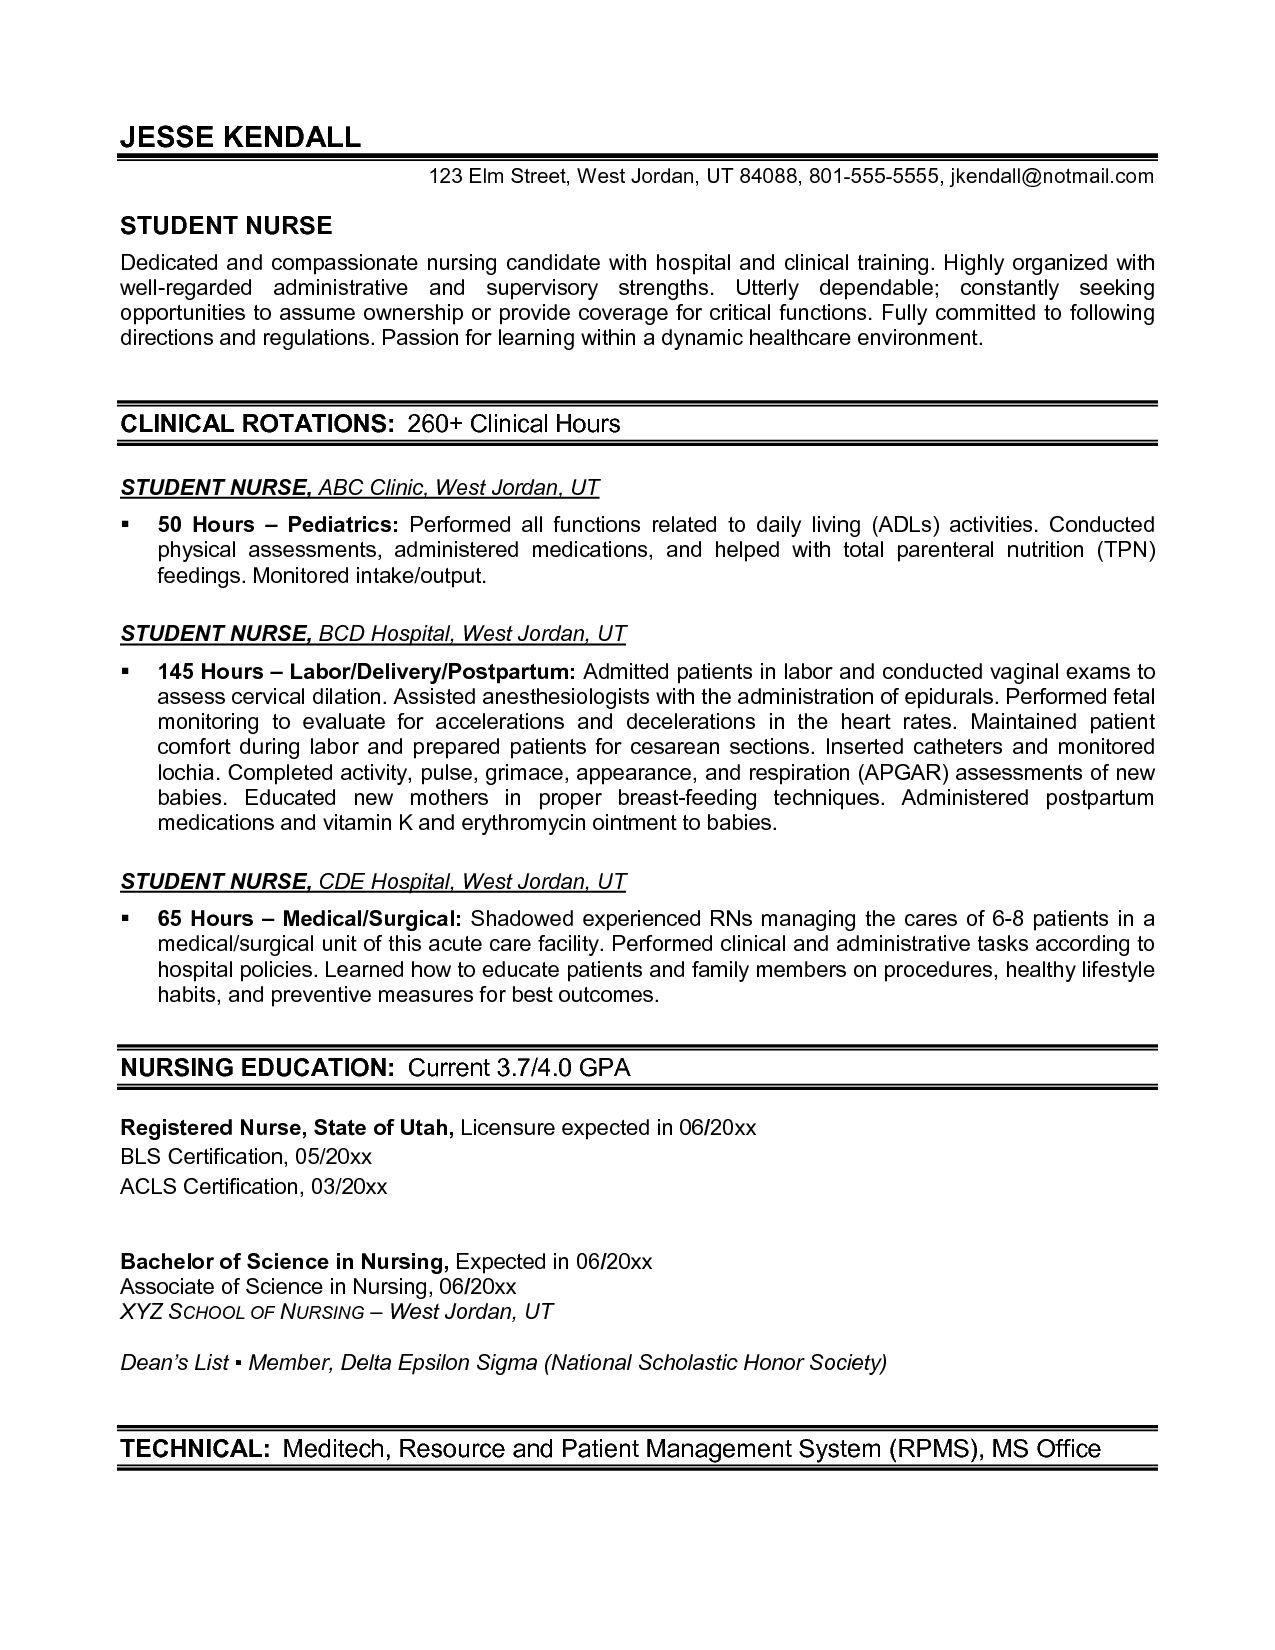 pin on nursing new nurse resume objective food service skills for marcie frost high Resume New Nurse Resume Objective